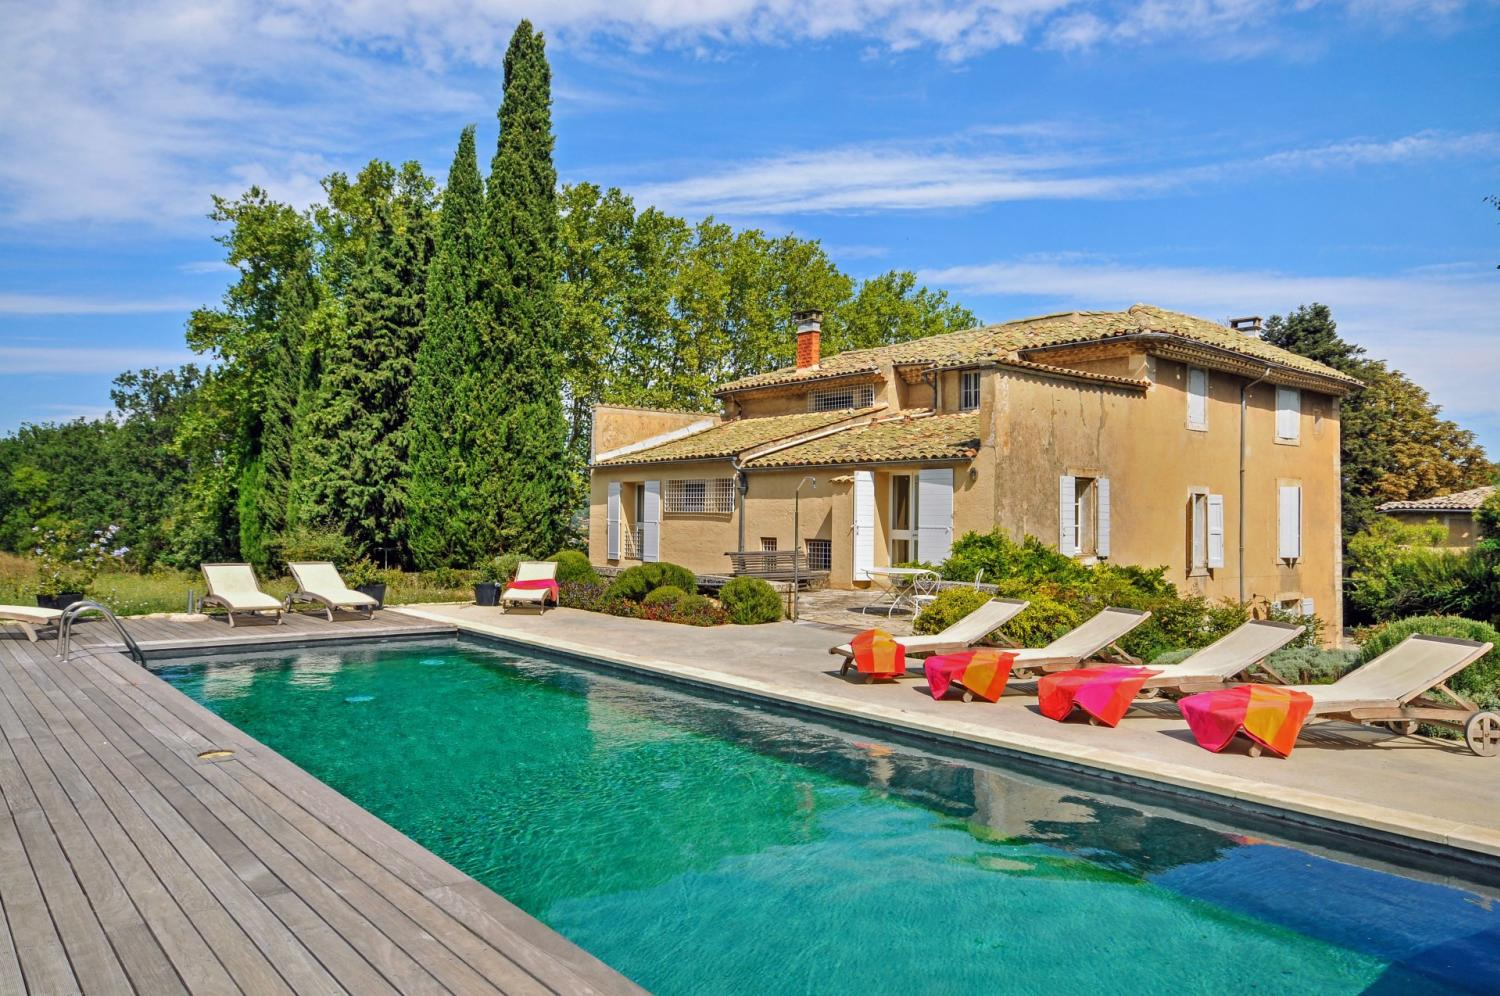 Outdoor Pool 1, Grand Luberon, Apt, Provence.